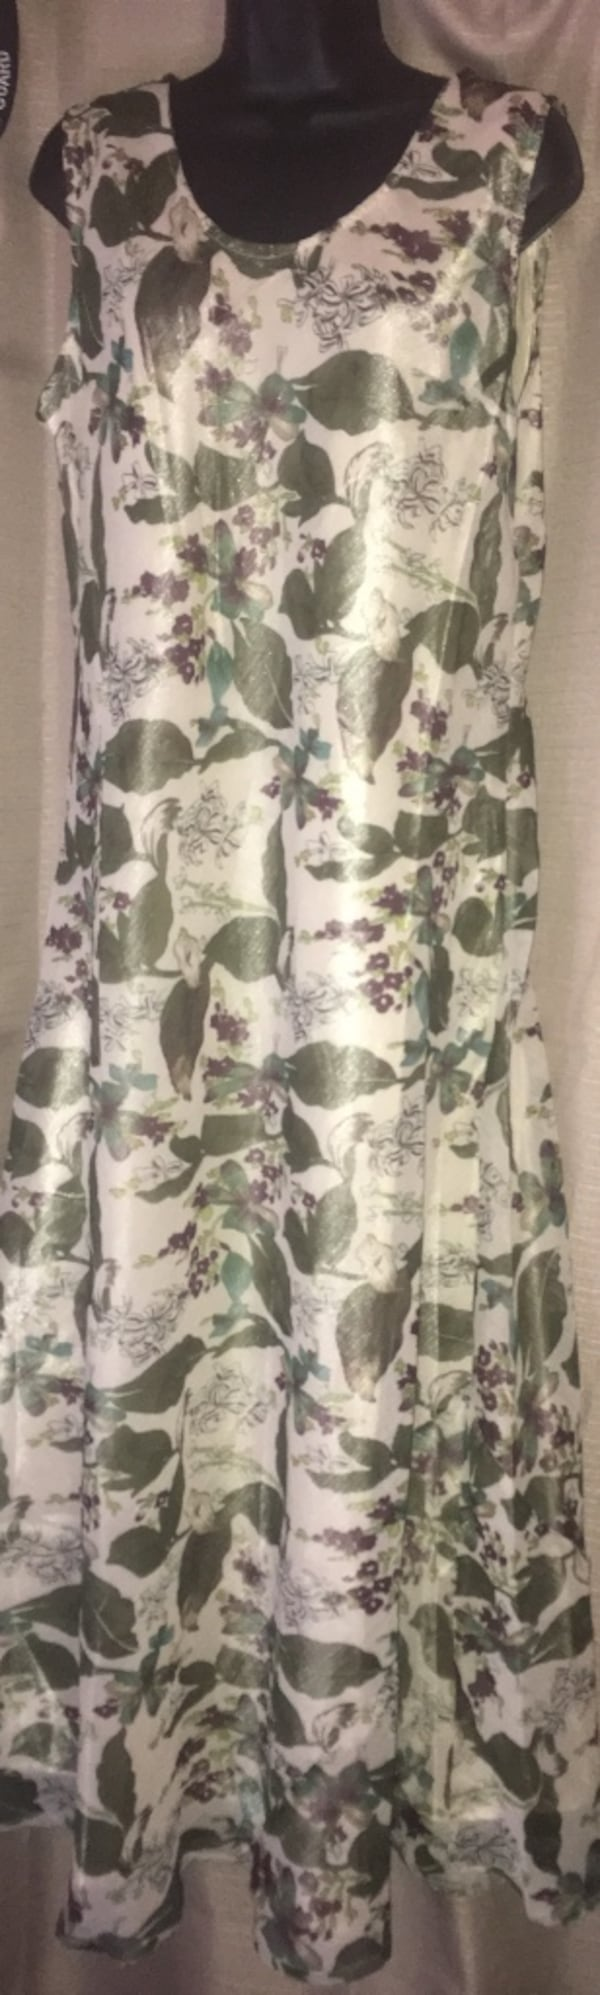 New without tags Nikky XXL dress with lining located off lake mead and jones area asking $10 5703b70a-e250-44e9-bd73-cbb98046f839